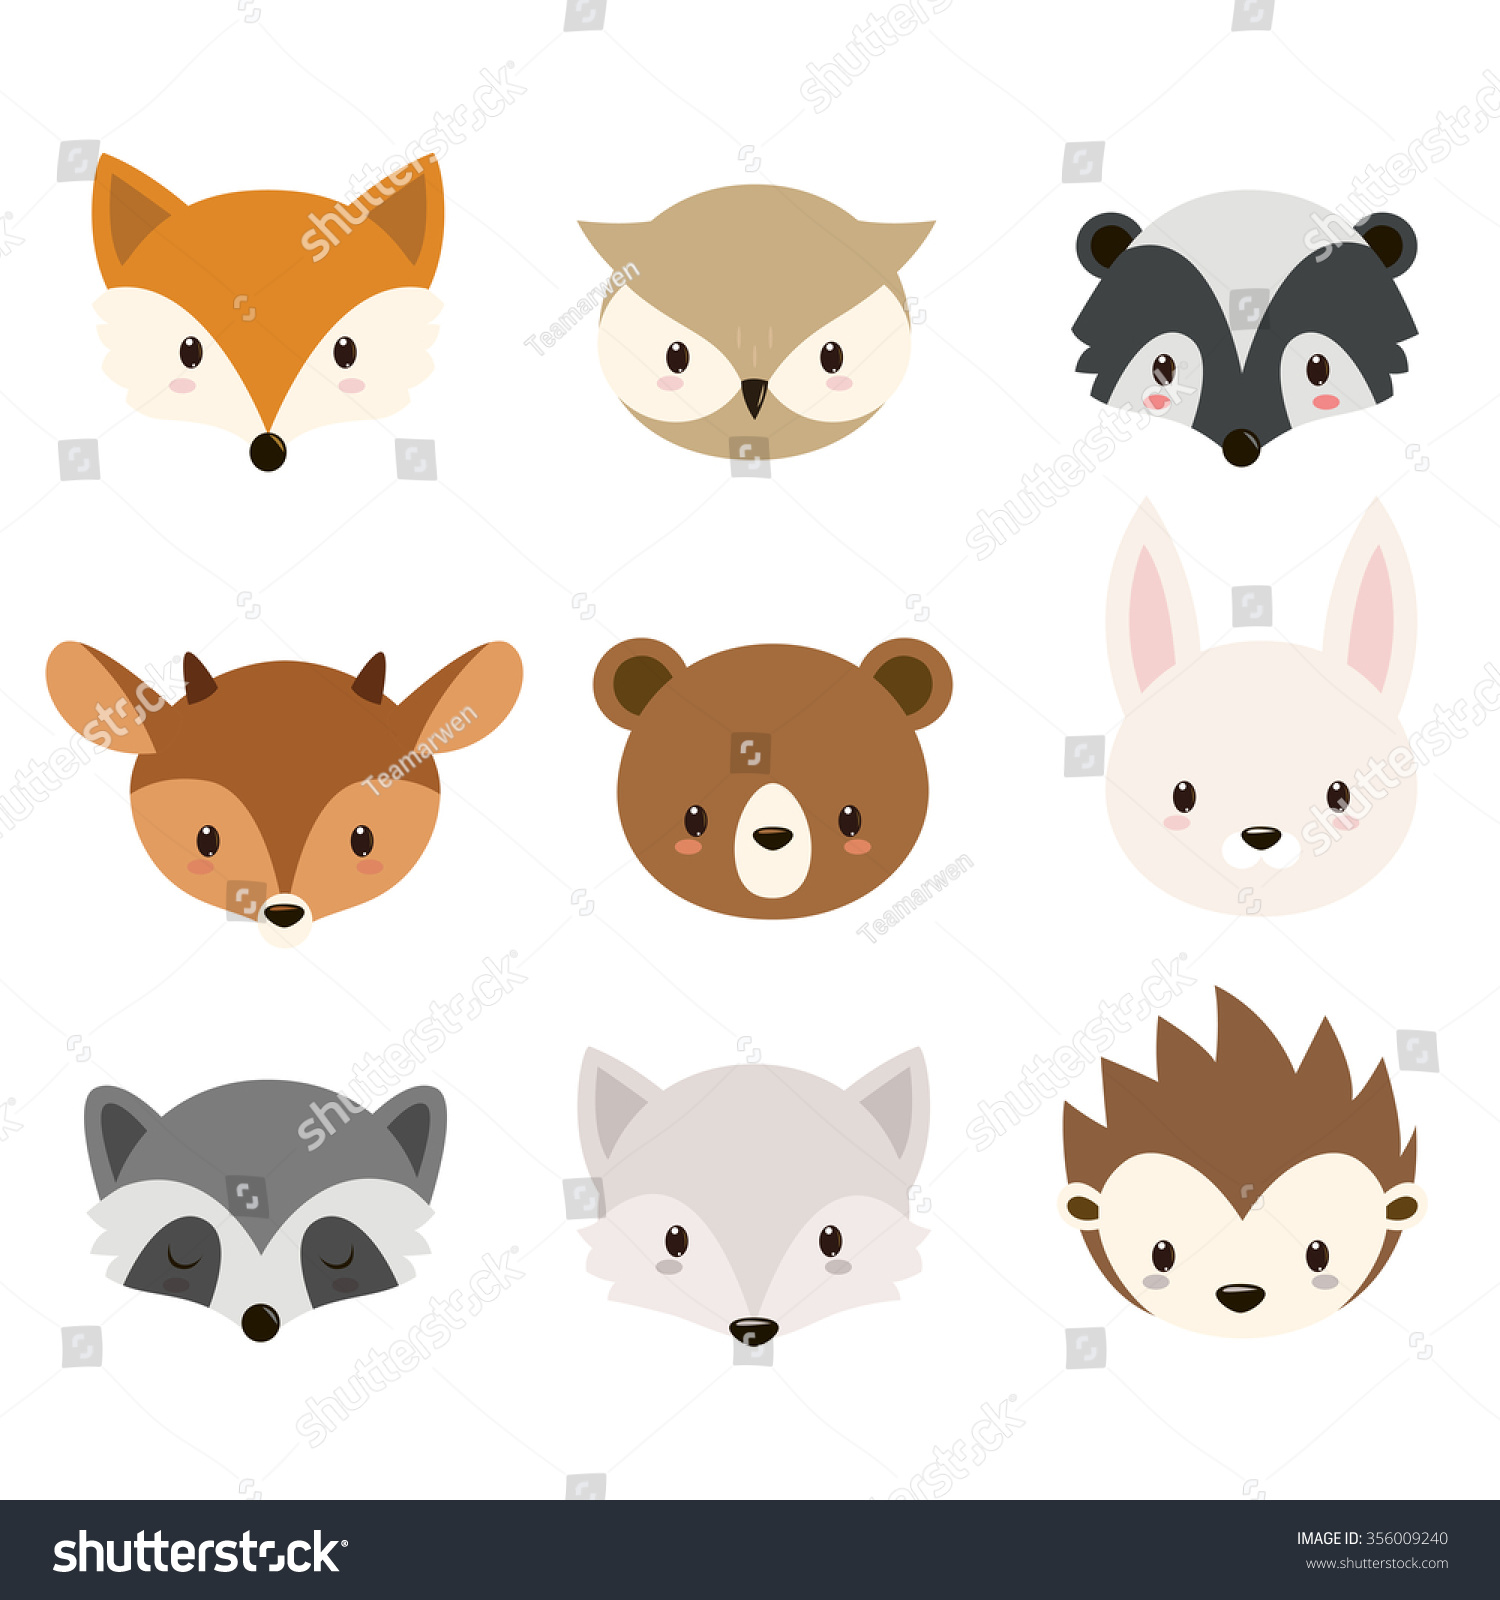 furthermore dTraLyEac also  as well my melody coloring pages 6 also cornicetta fiori colorati as well 7eiMK6Tn5 furthermore octopus coloring page 6 further  furthermore  besides stock vector cute woodland animals collection 356009240 together with . on cute baby zoo animals coloring pages